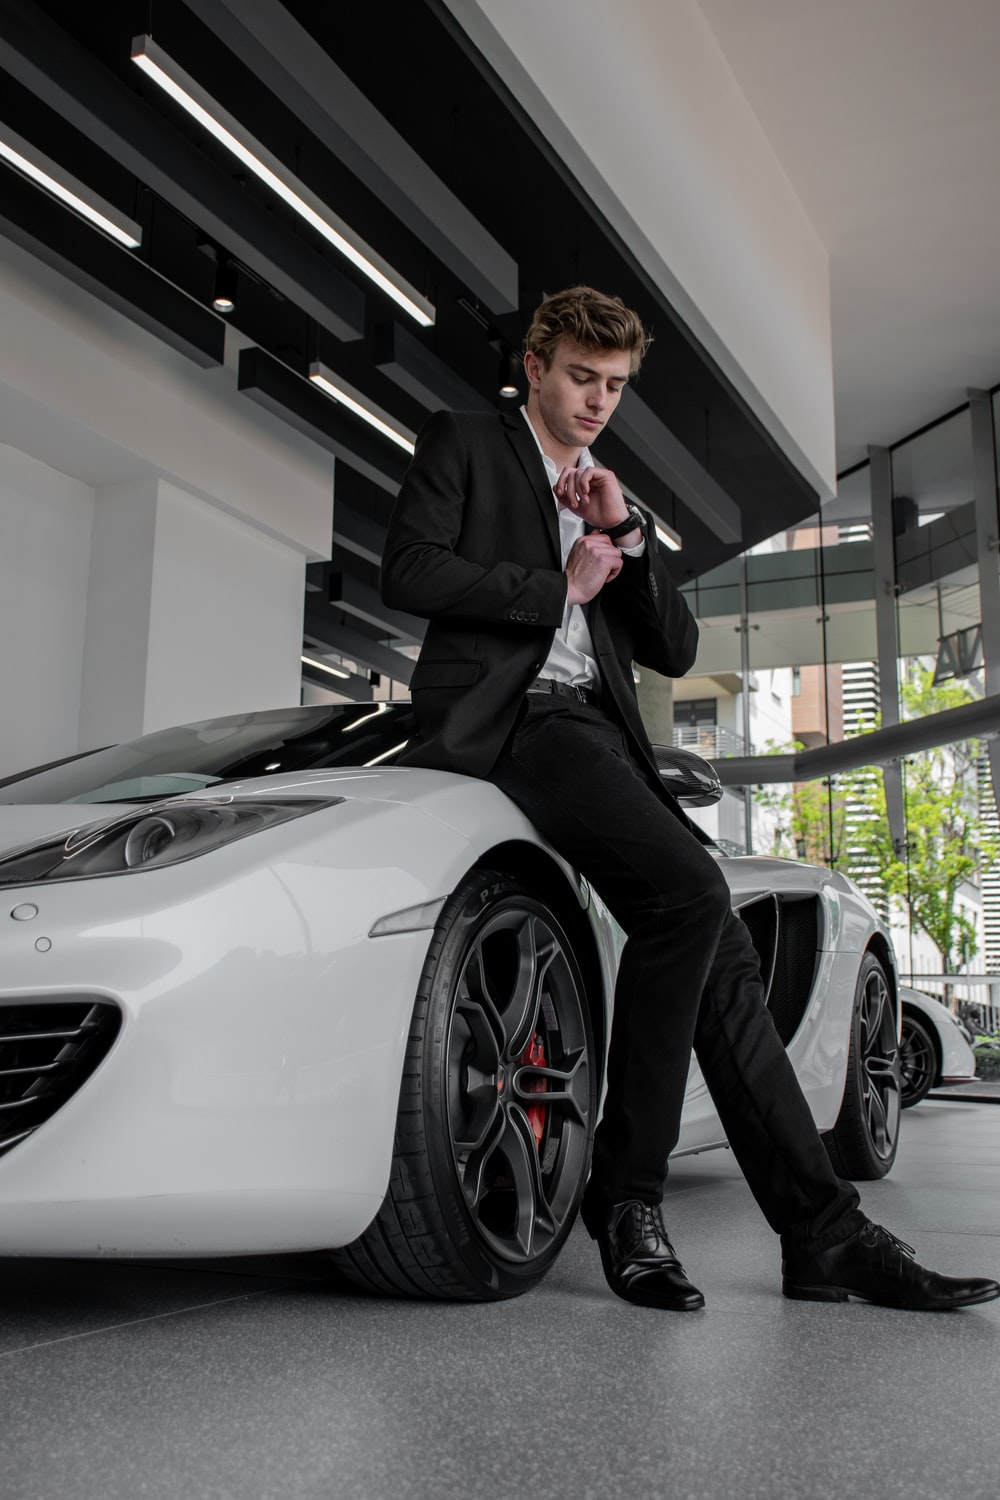 man in black suit standing beside white car